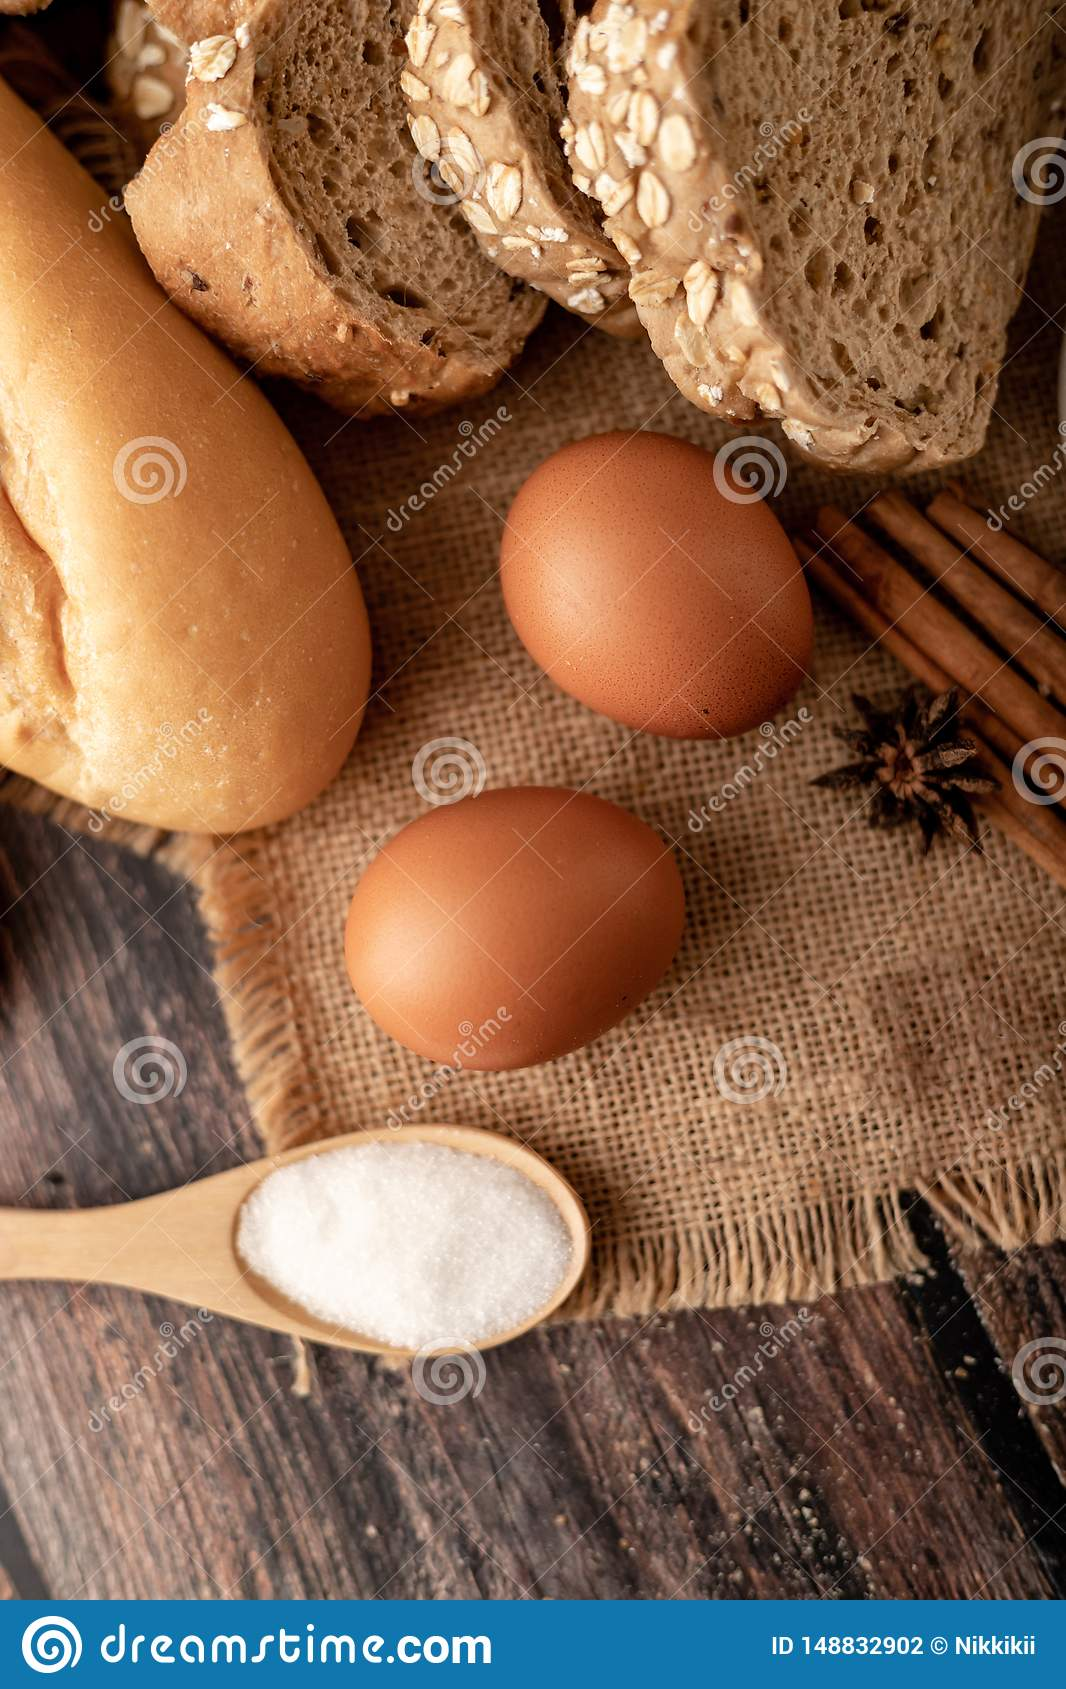 Flour in wooden spoon and eggs on the sack